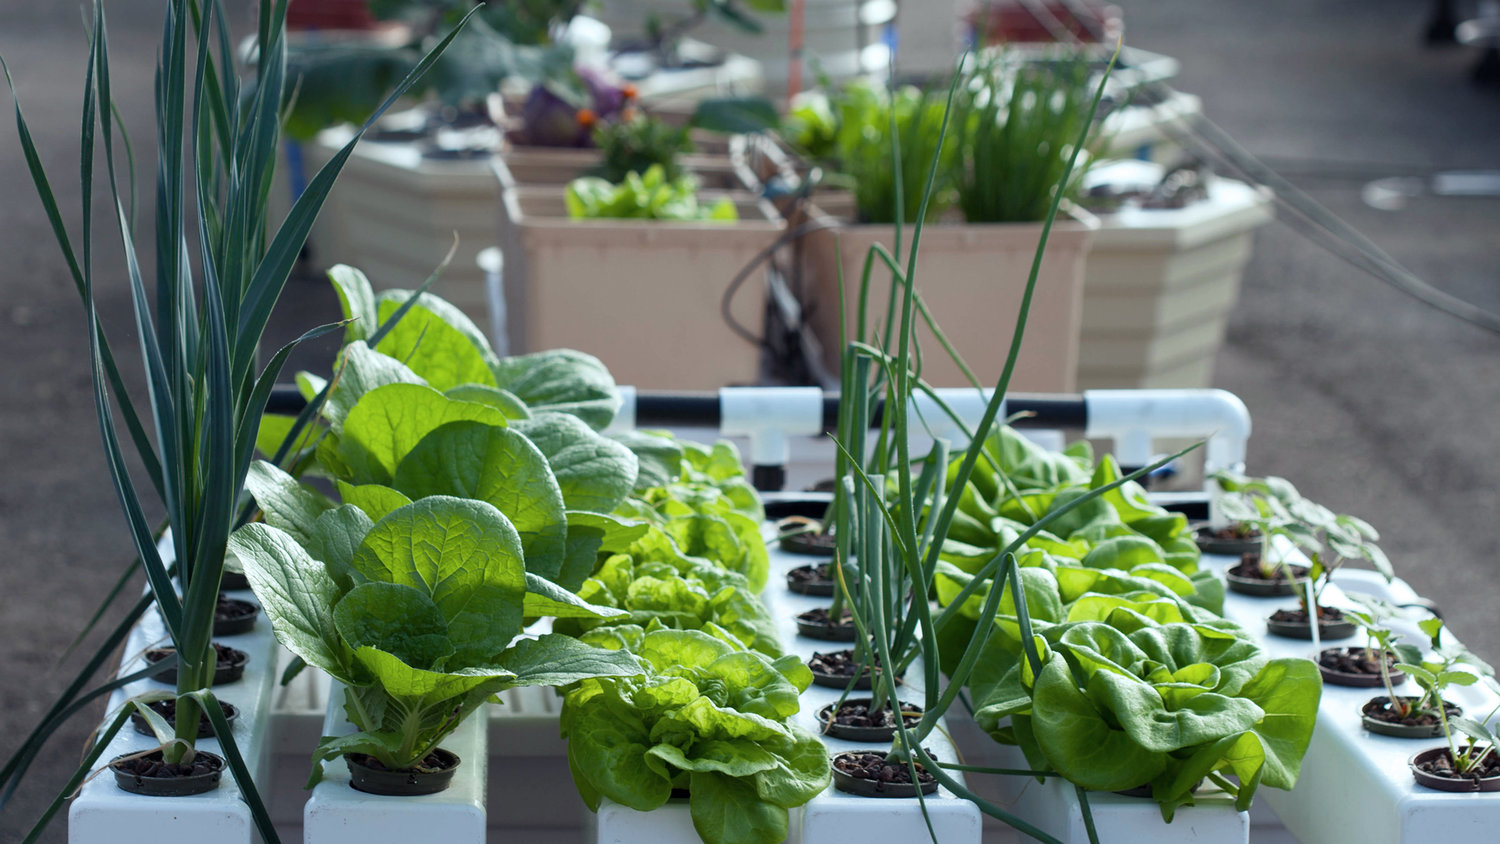 How to make a hydroponics system